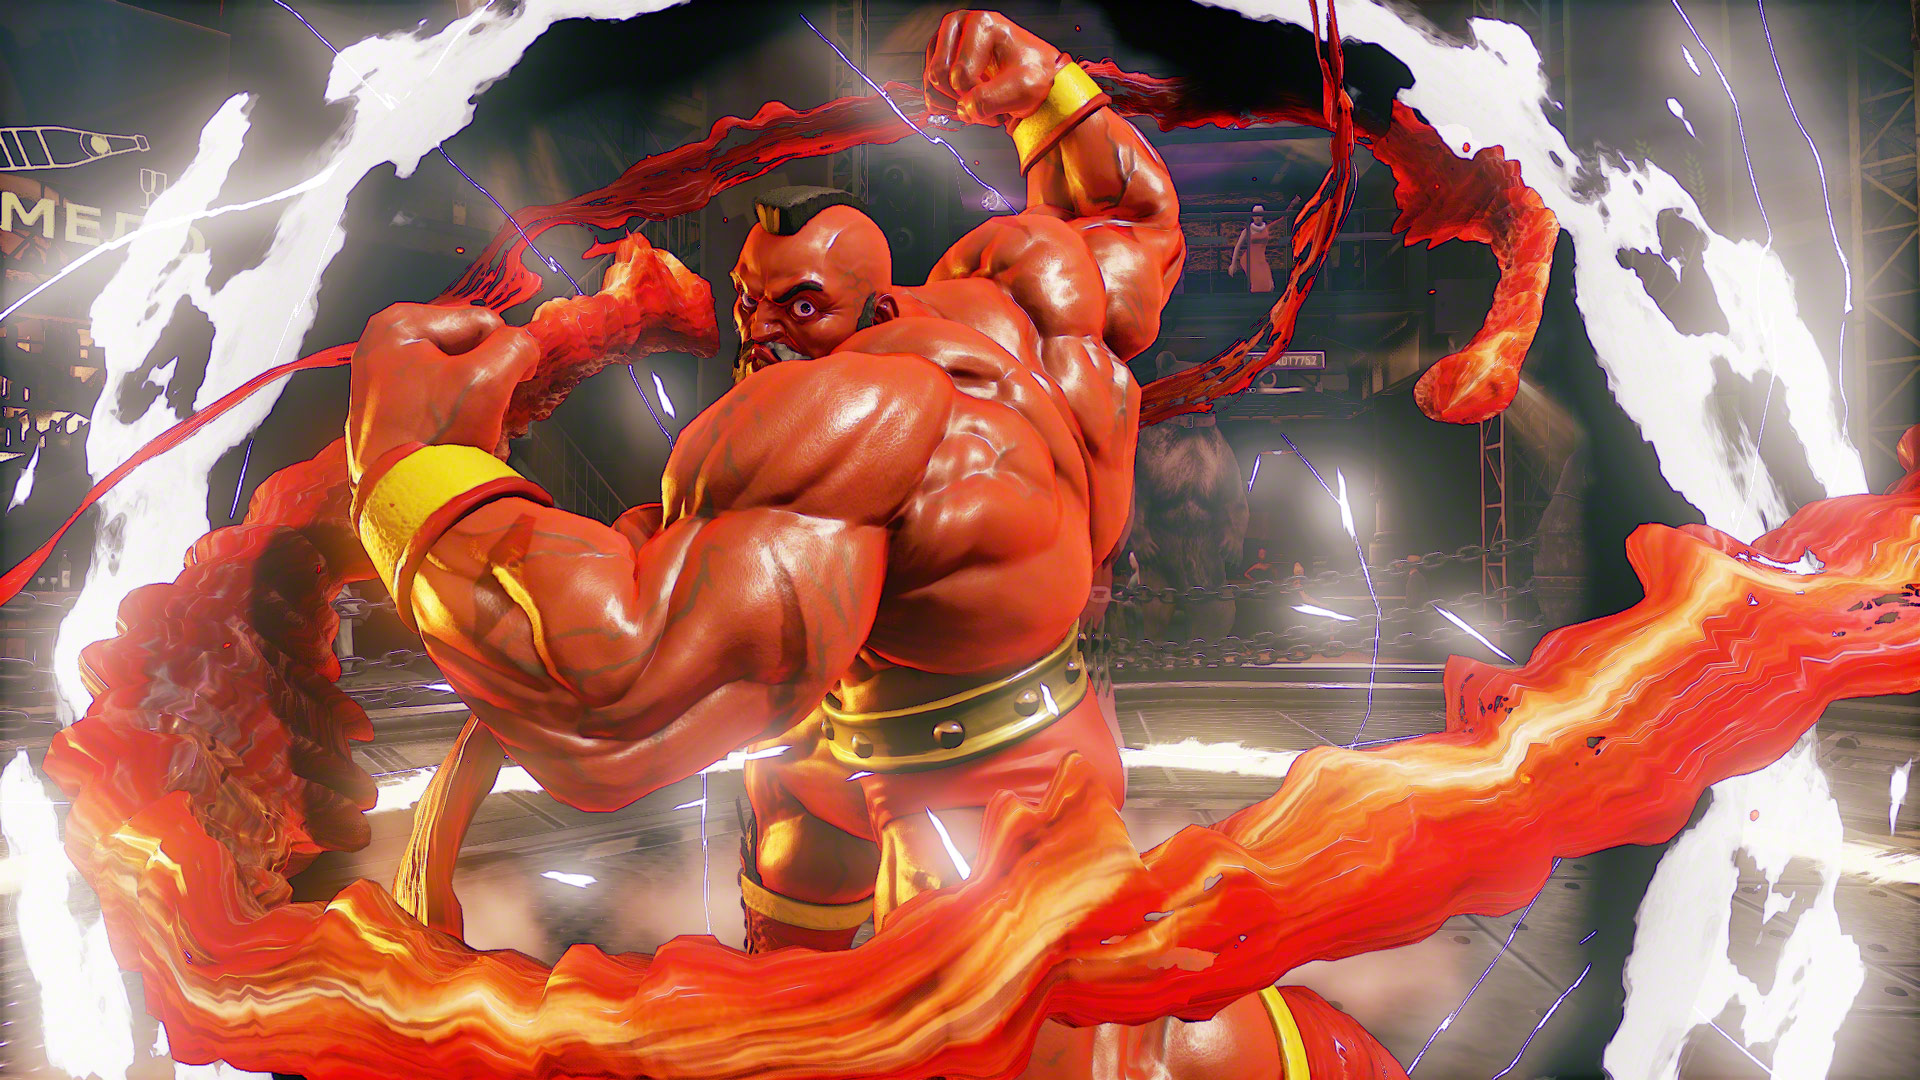 Zangief returns in Street Fighter 5 3 out of 18 image gallery